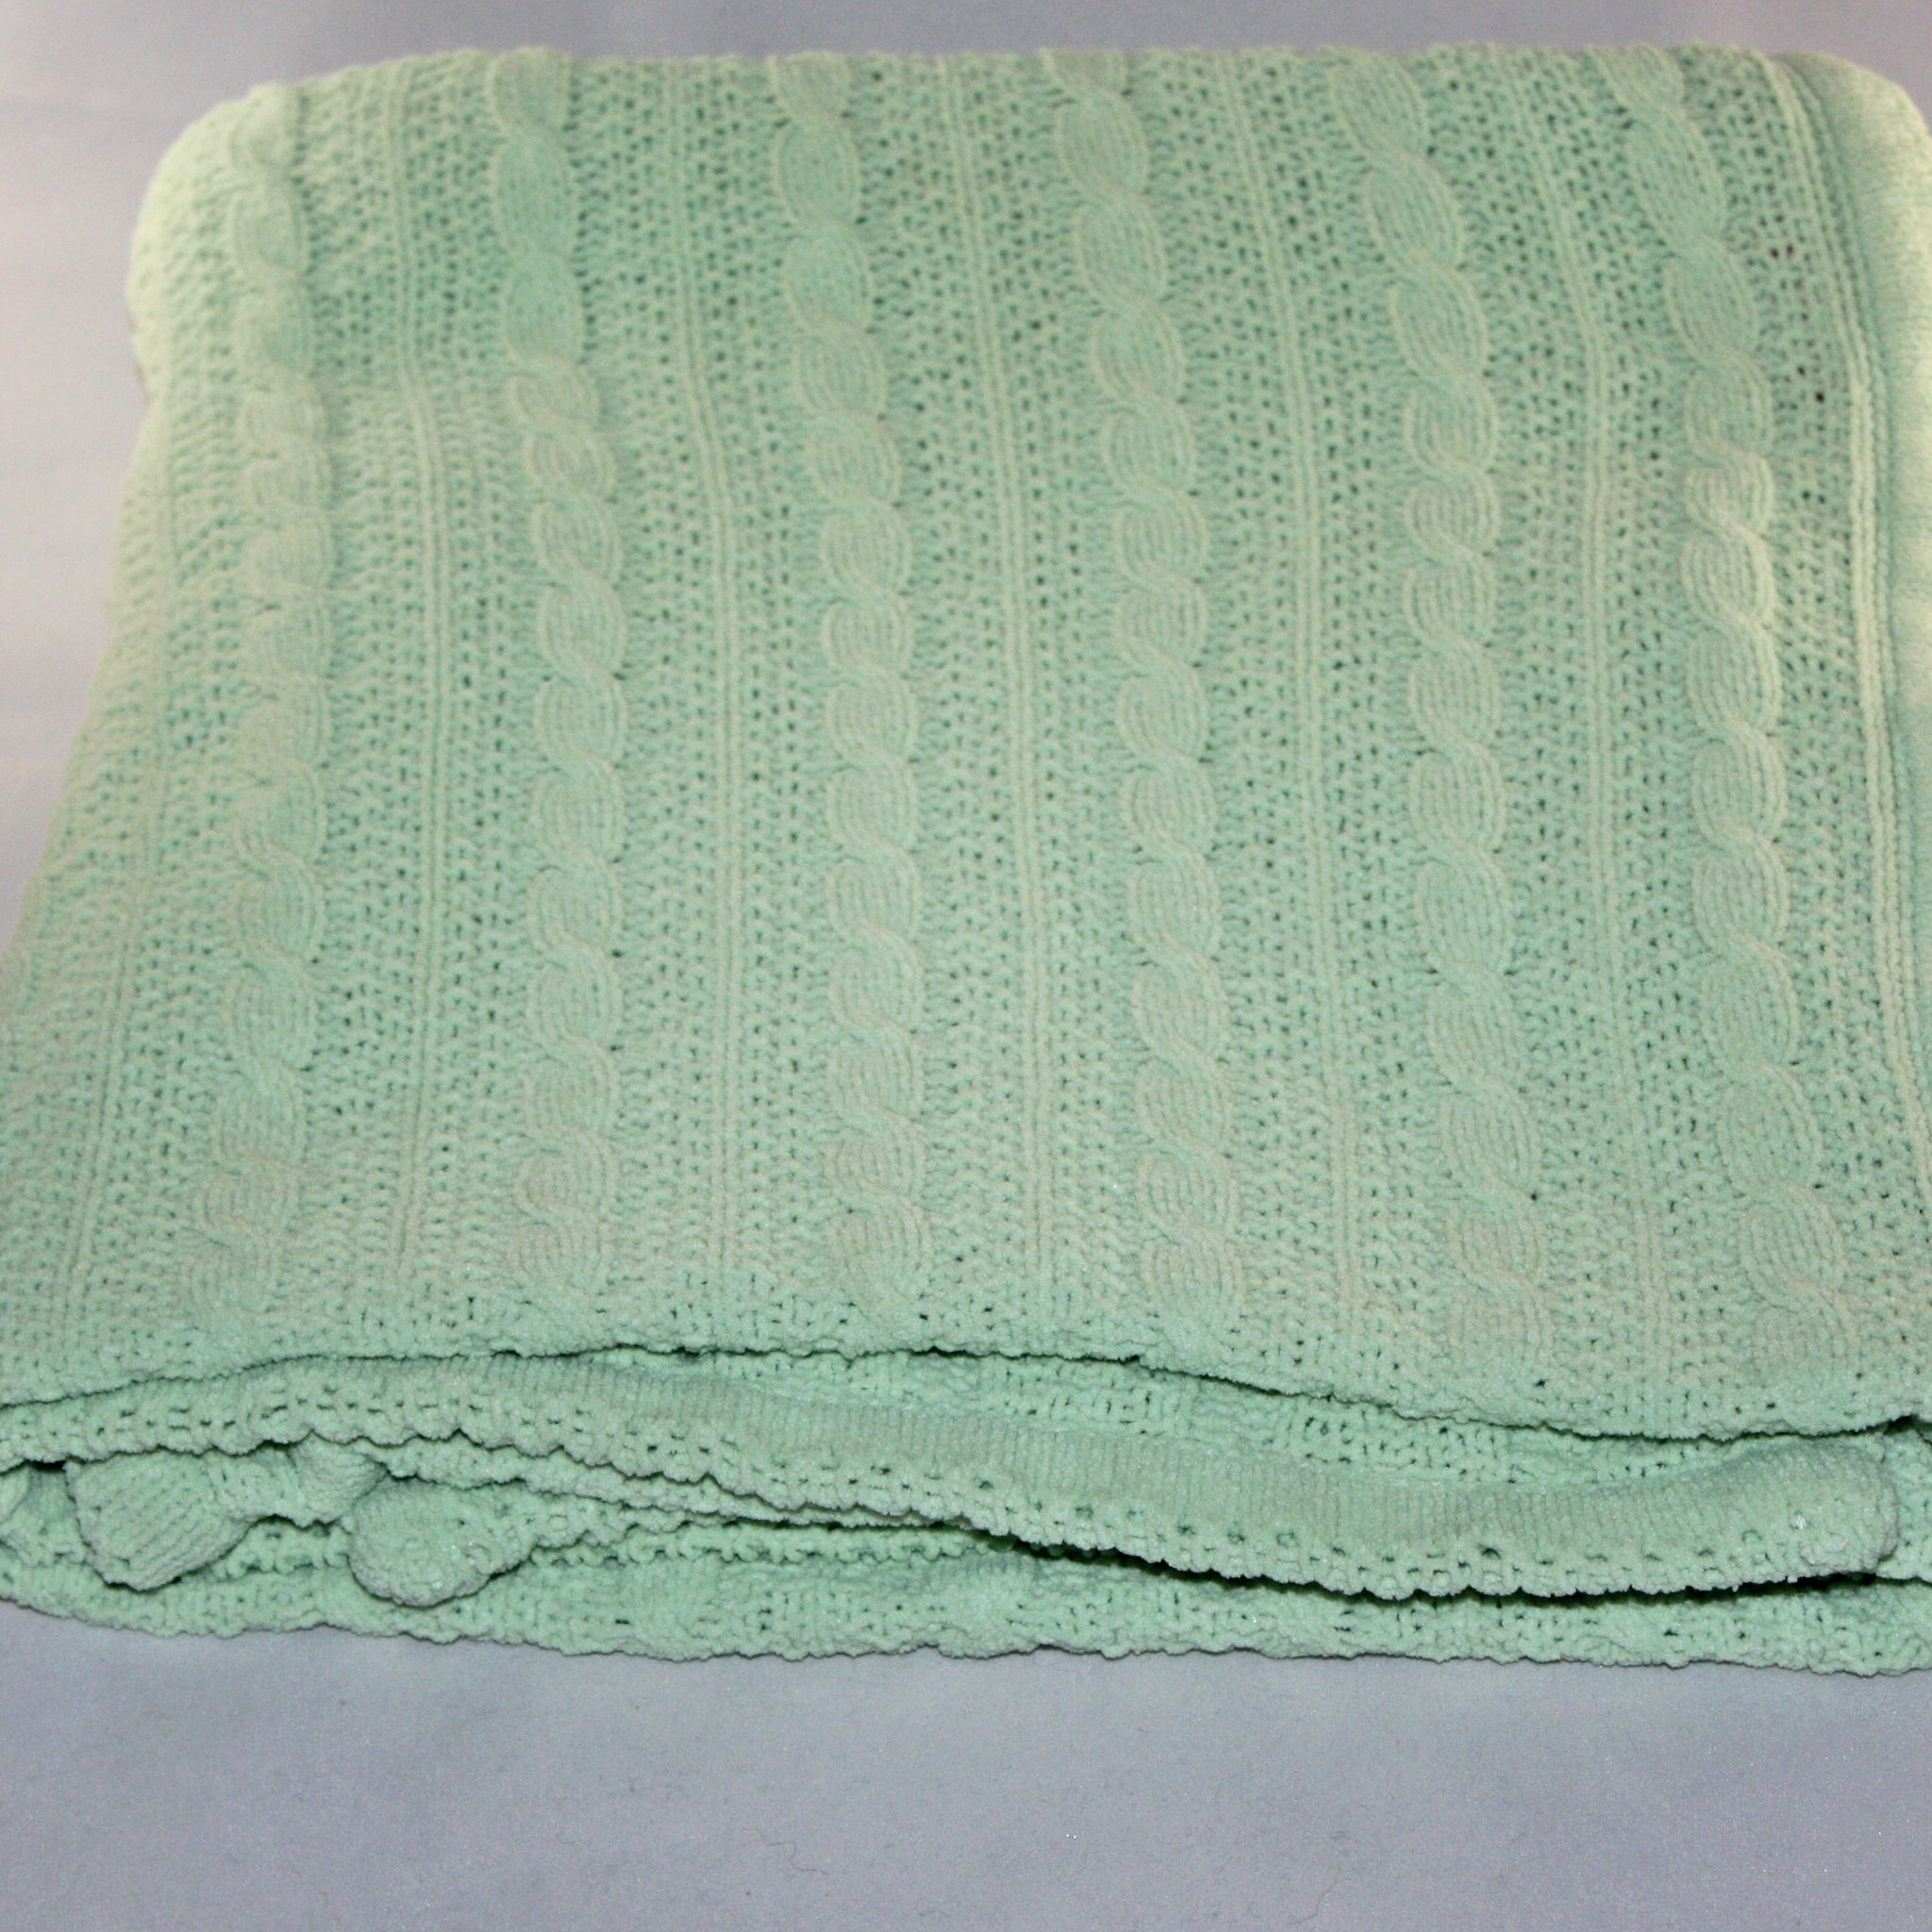 Amy Coe Limited Edition Green Knit Chenille Baby Blanket